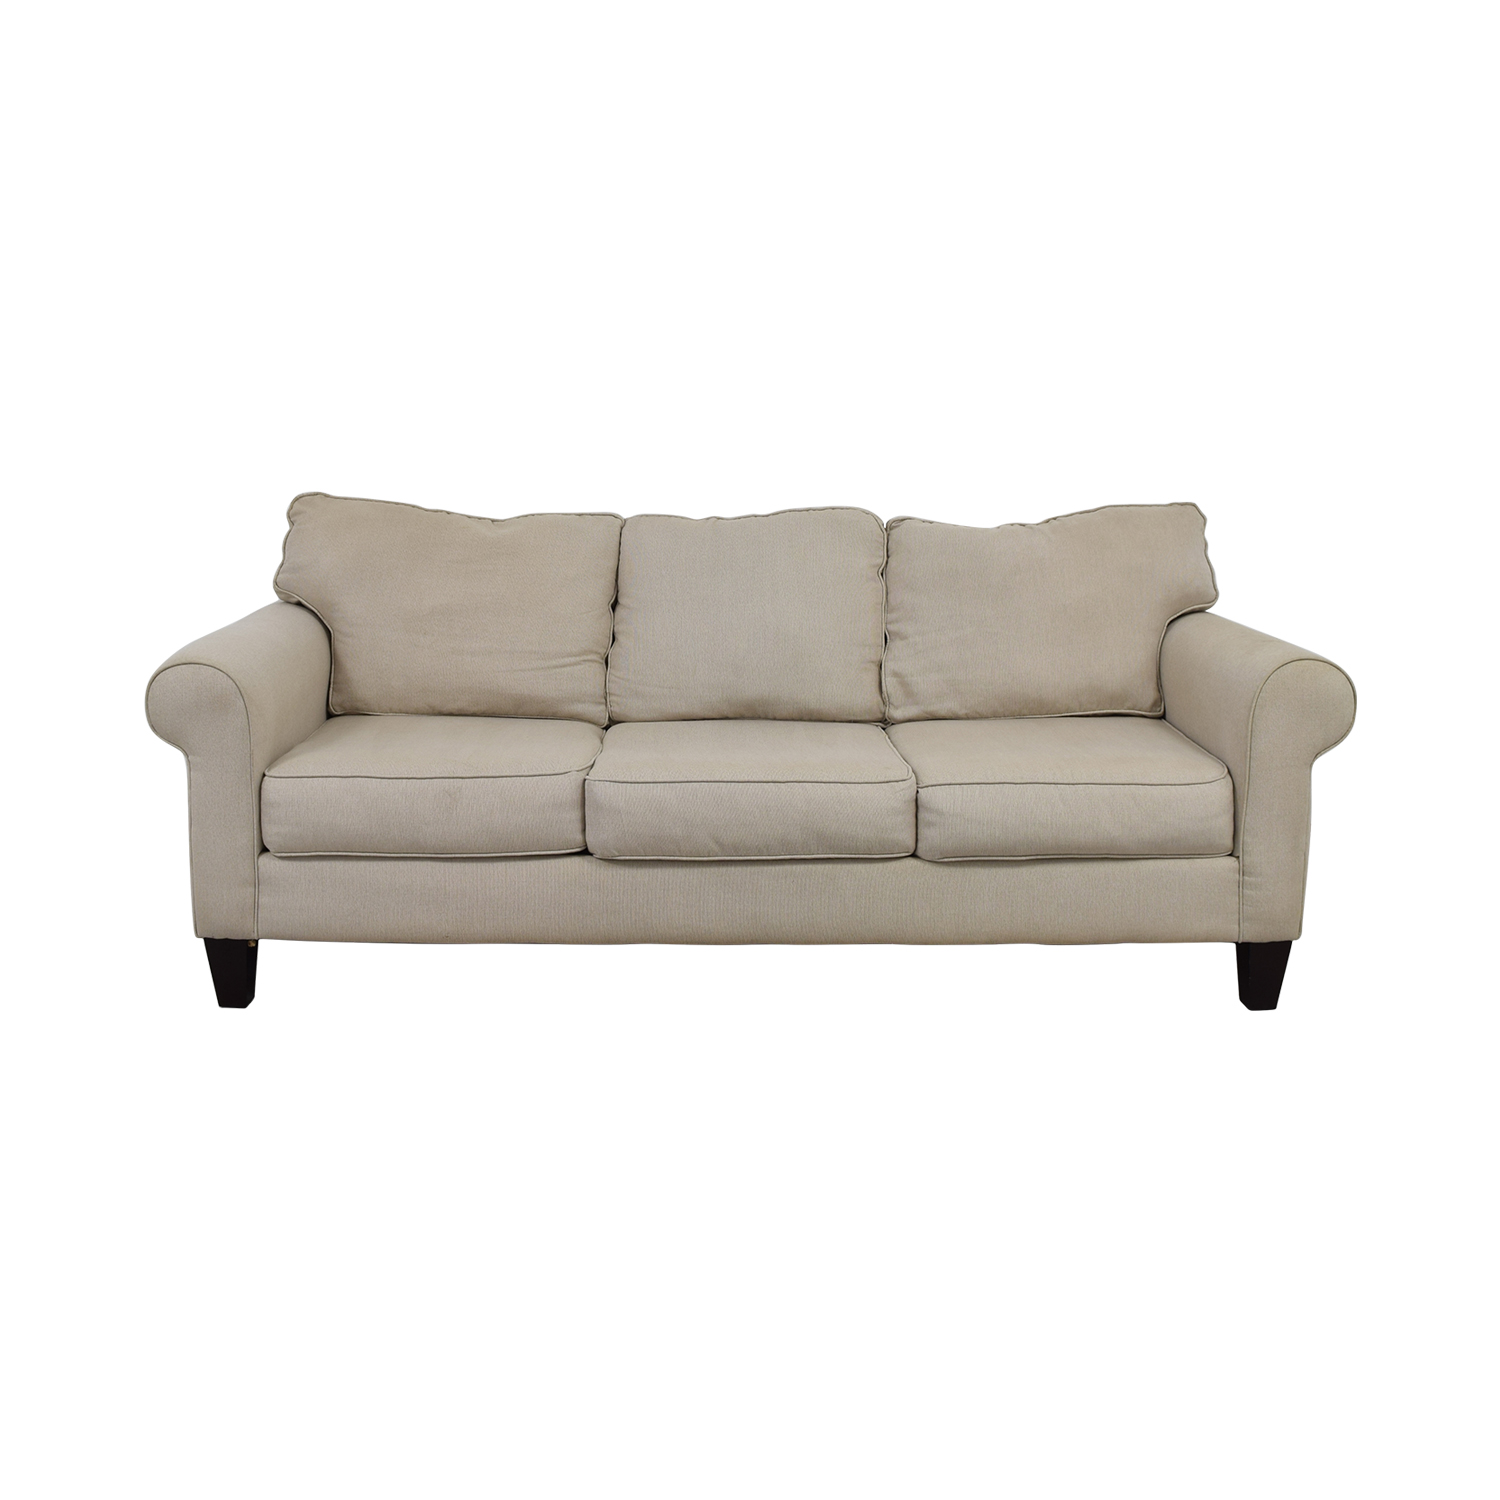 shop Raymour and Flanigan Raymour and Flanigan Langston Tan Couch online